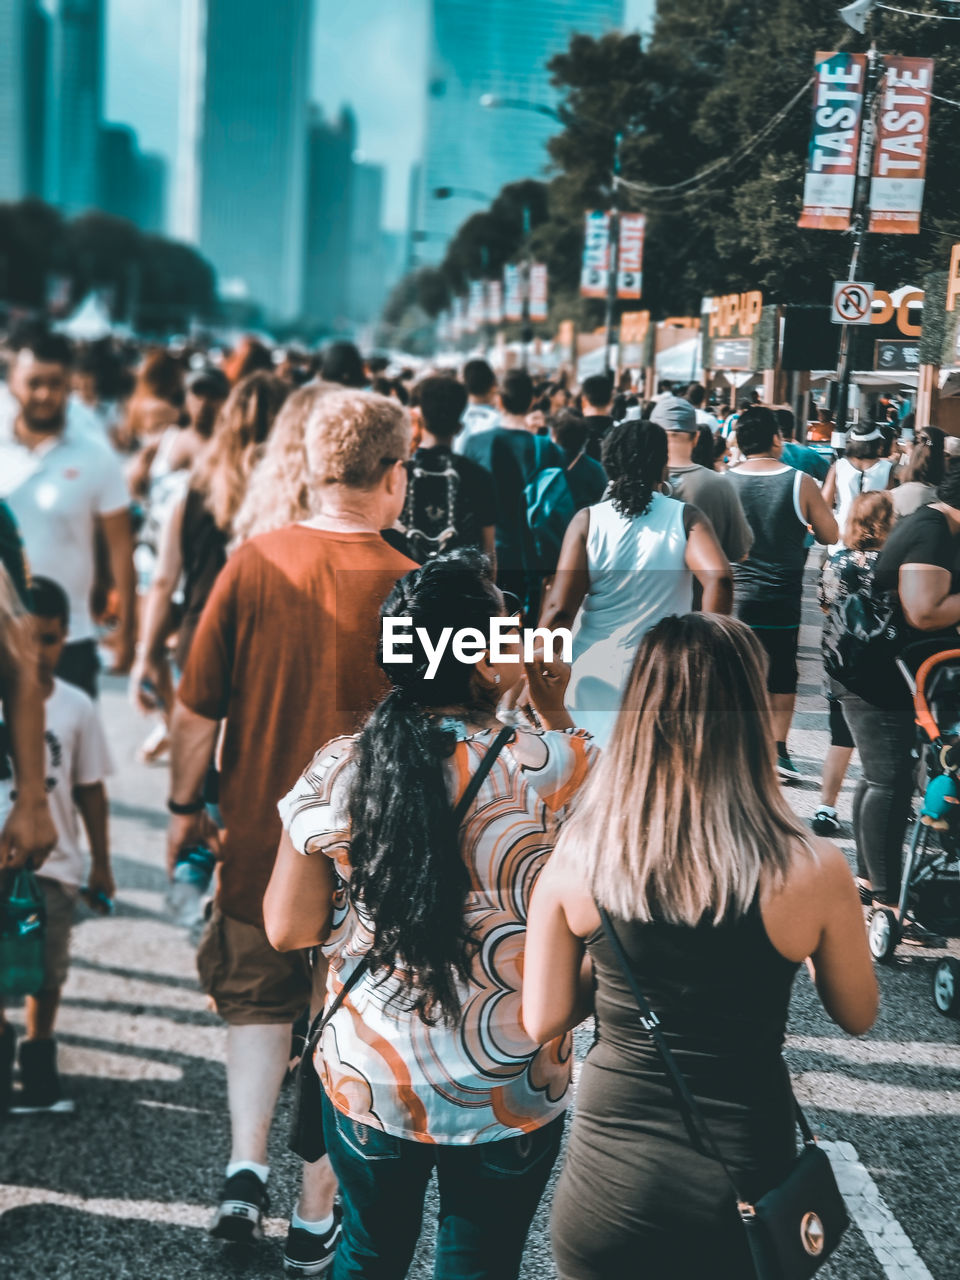 city, real people, crowd, group of people, architecture, street, large group of people, lifestyles, men, women, built structure, adult, city life, leisure activity, day, casual clothing, togetherness, road, rear view, hairstyle